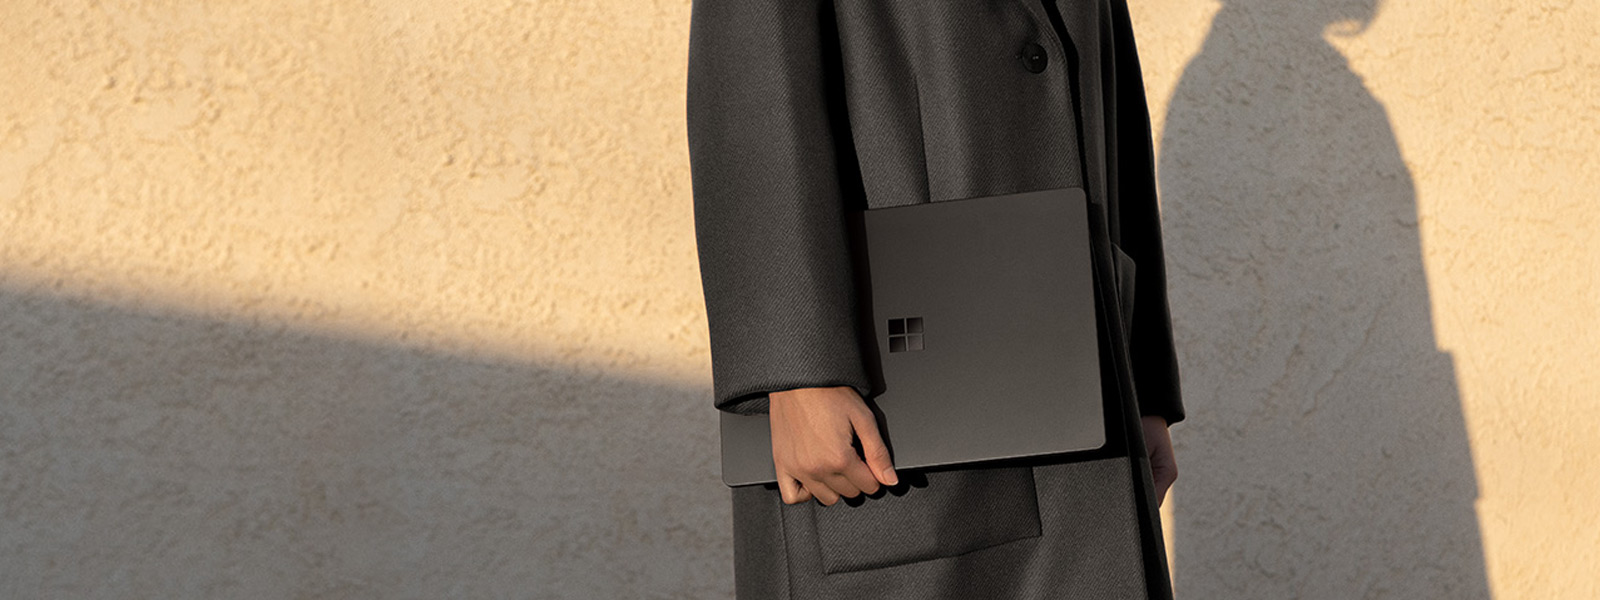 A person wearing a black coat holds Surface Laptop 2 in Black by their side